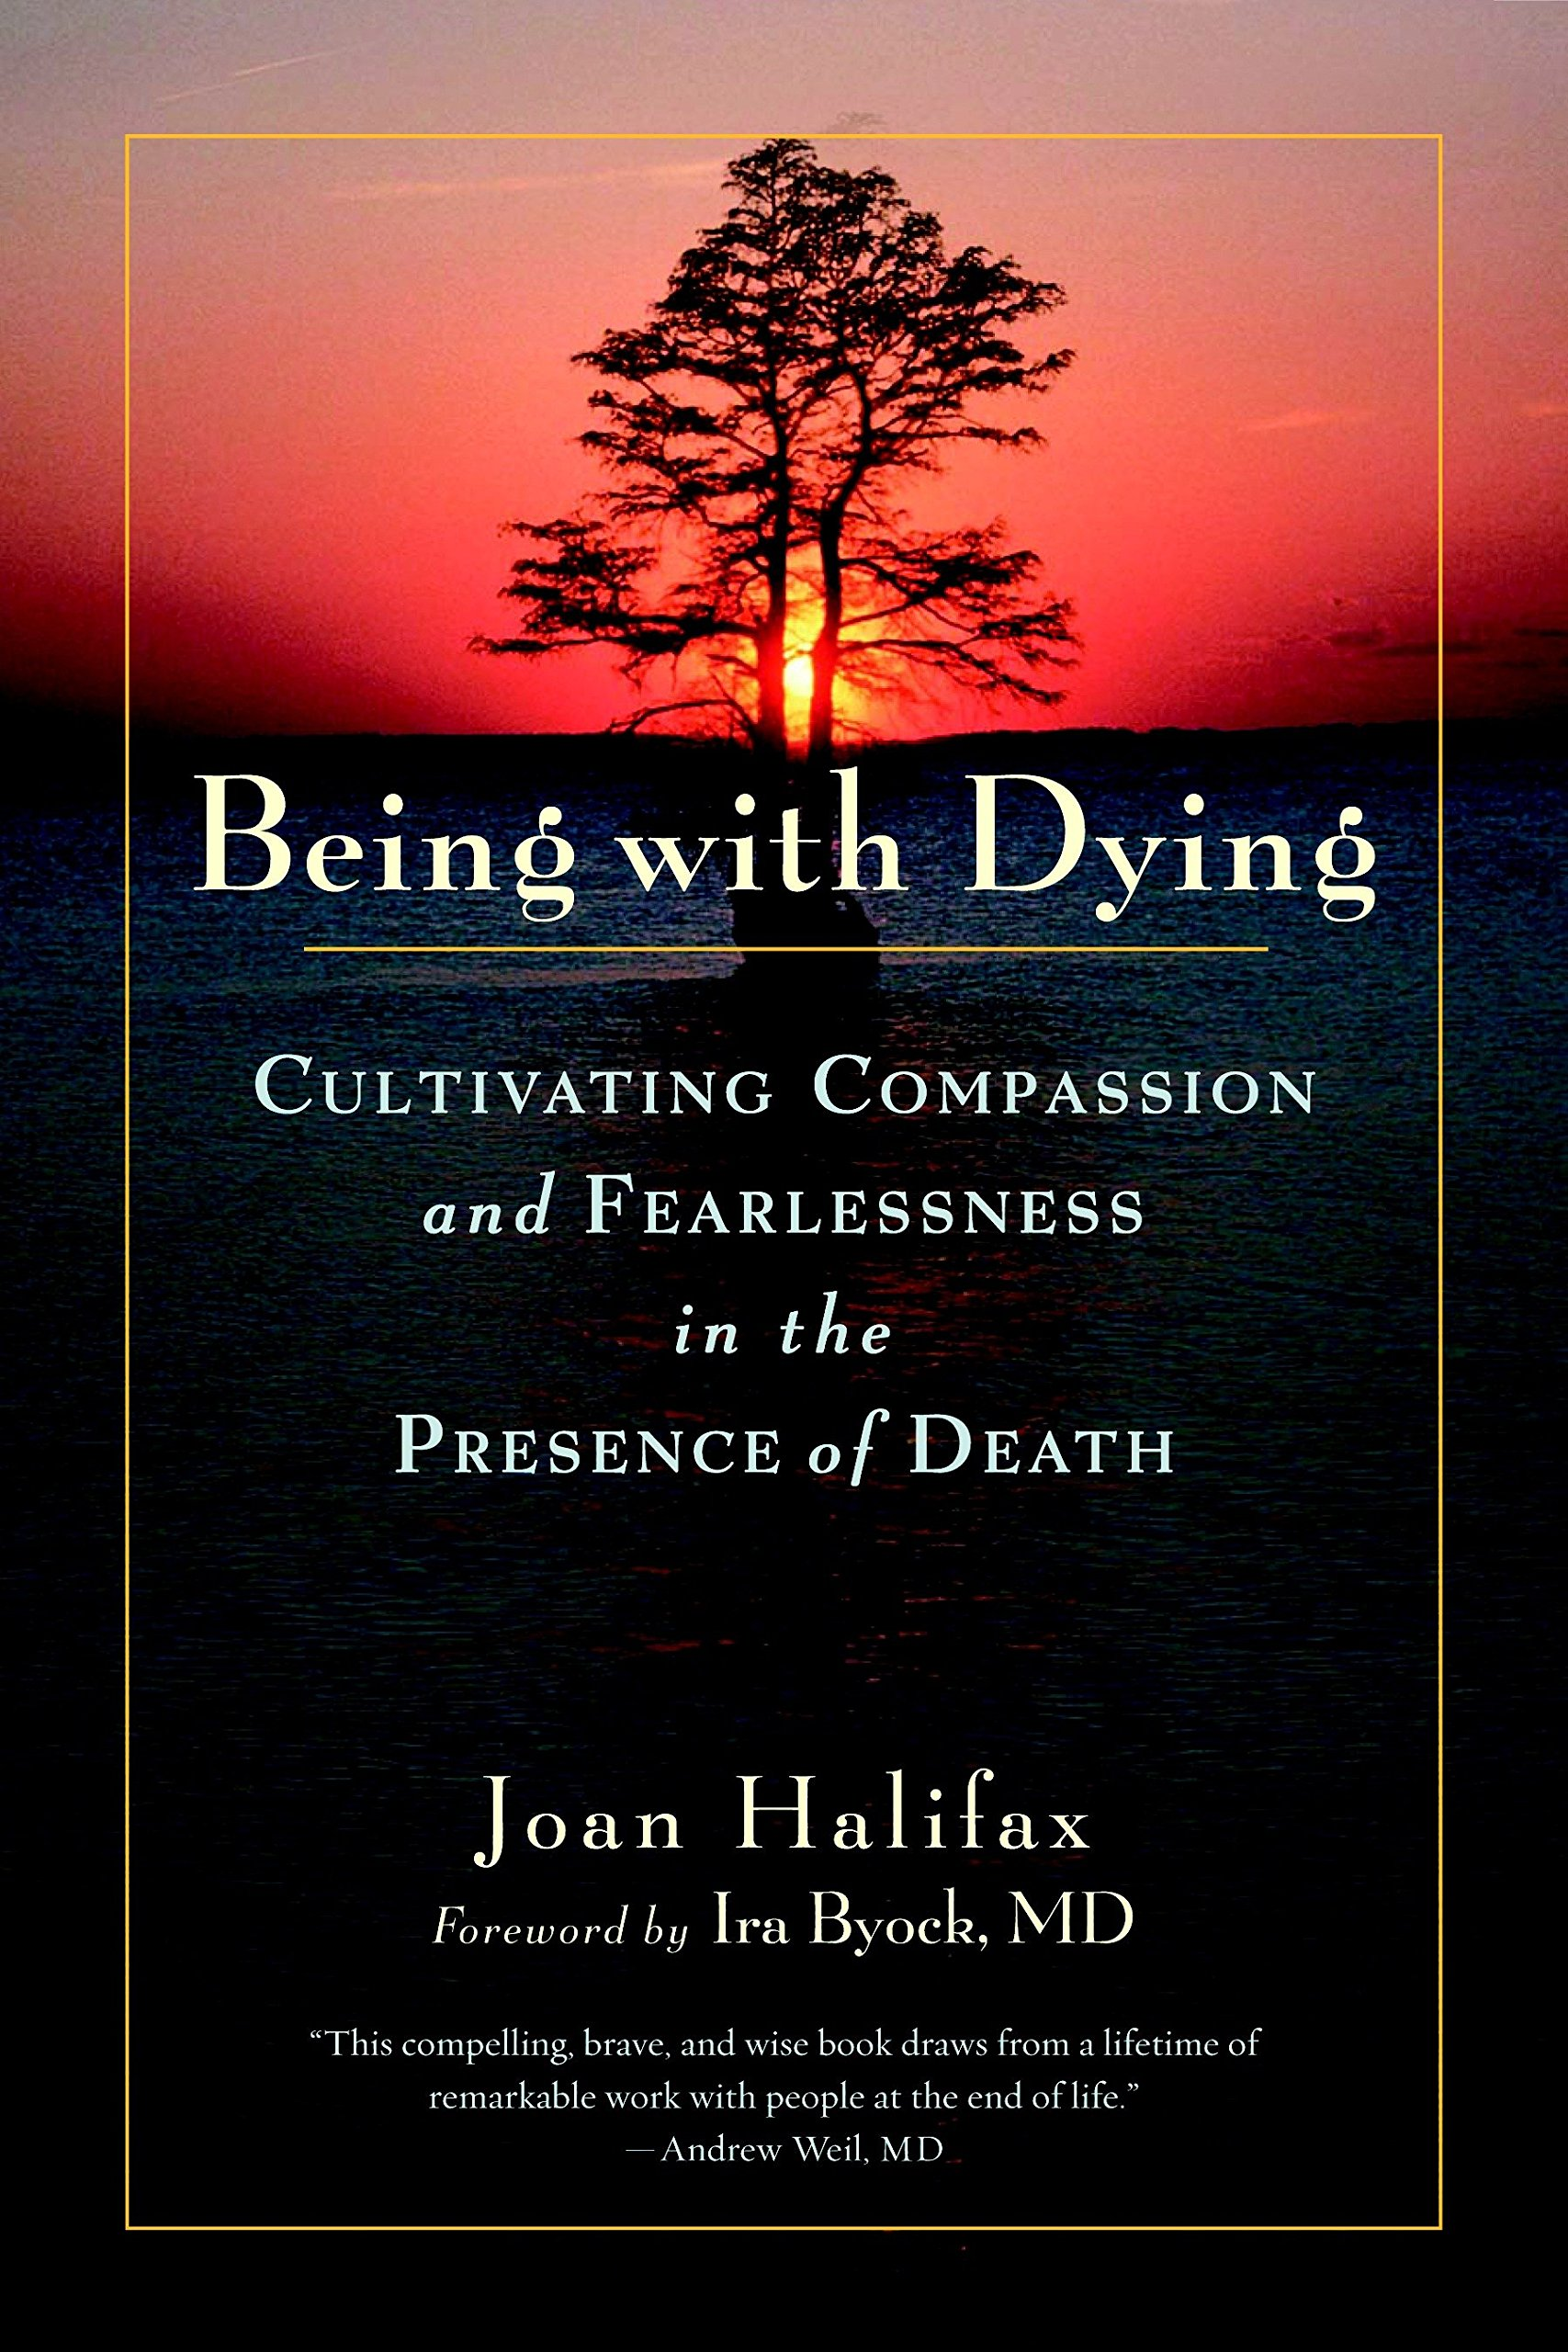 Being Dying Cultivating Compassion Fearlessness product image